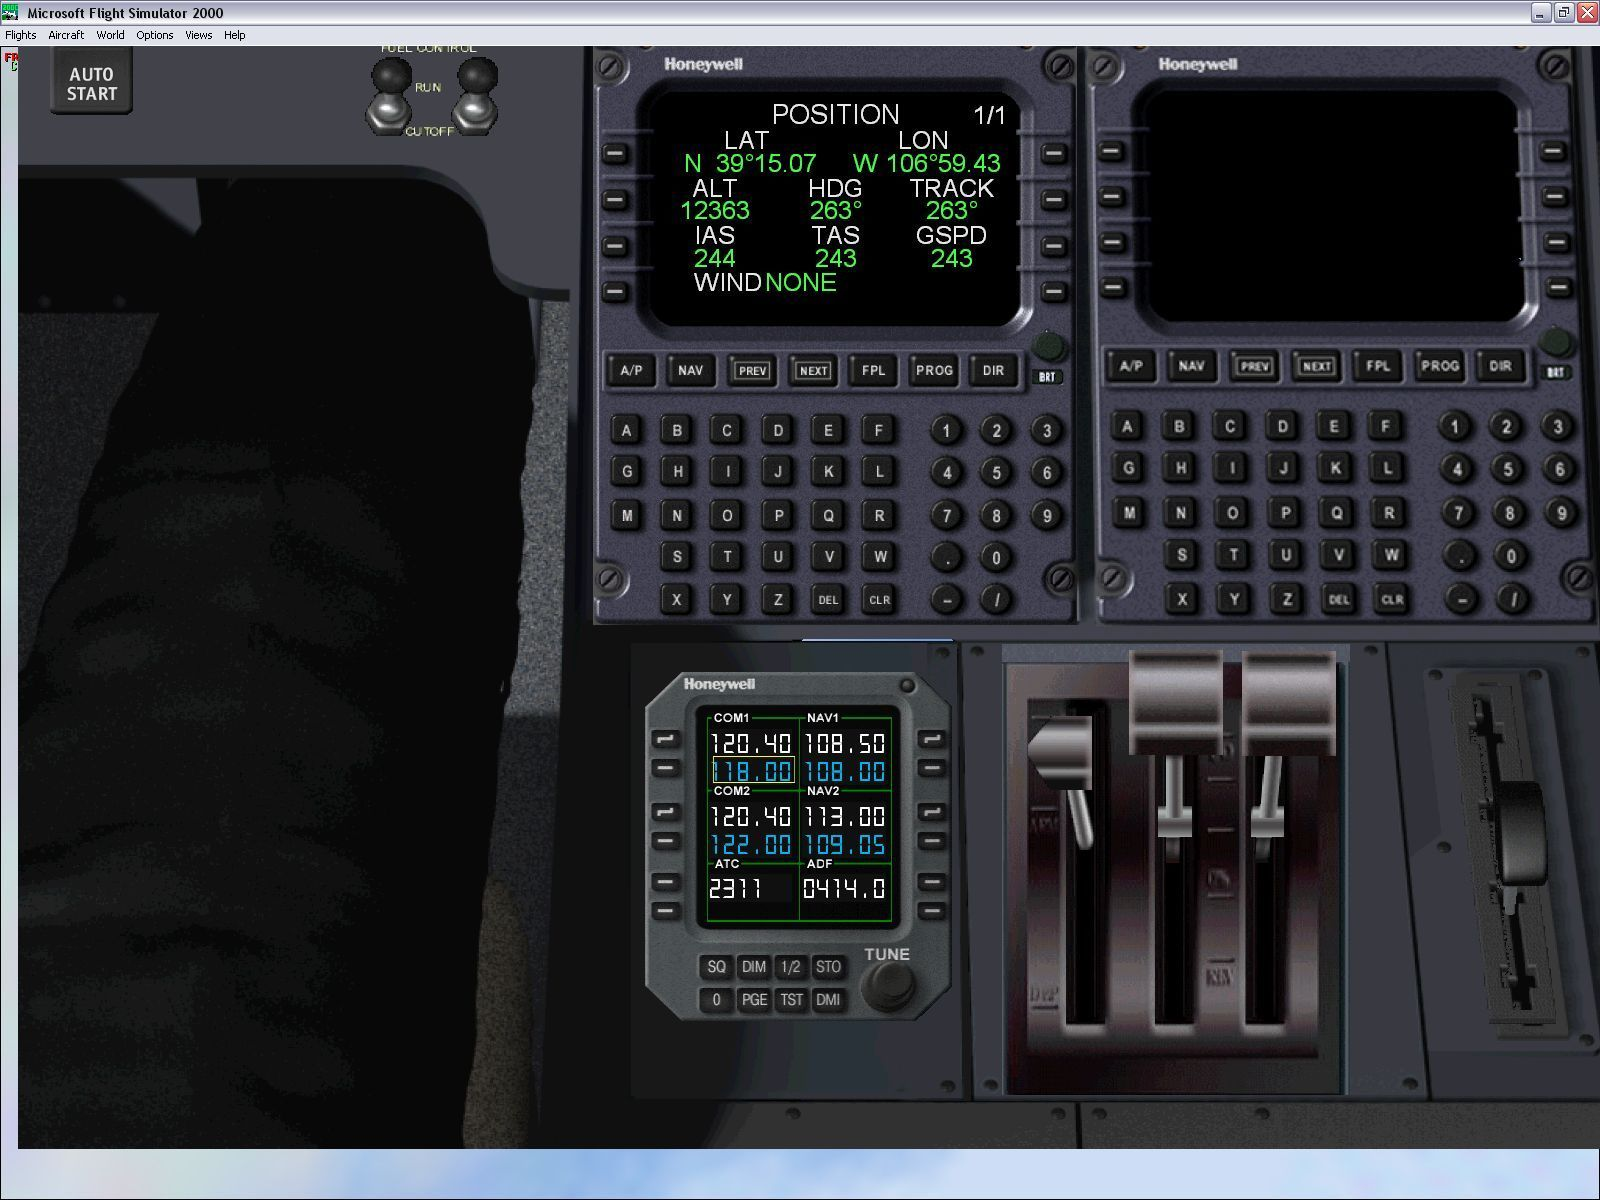 Executive Windows The Cessna Citation X, the overhead panel view